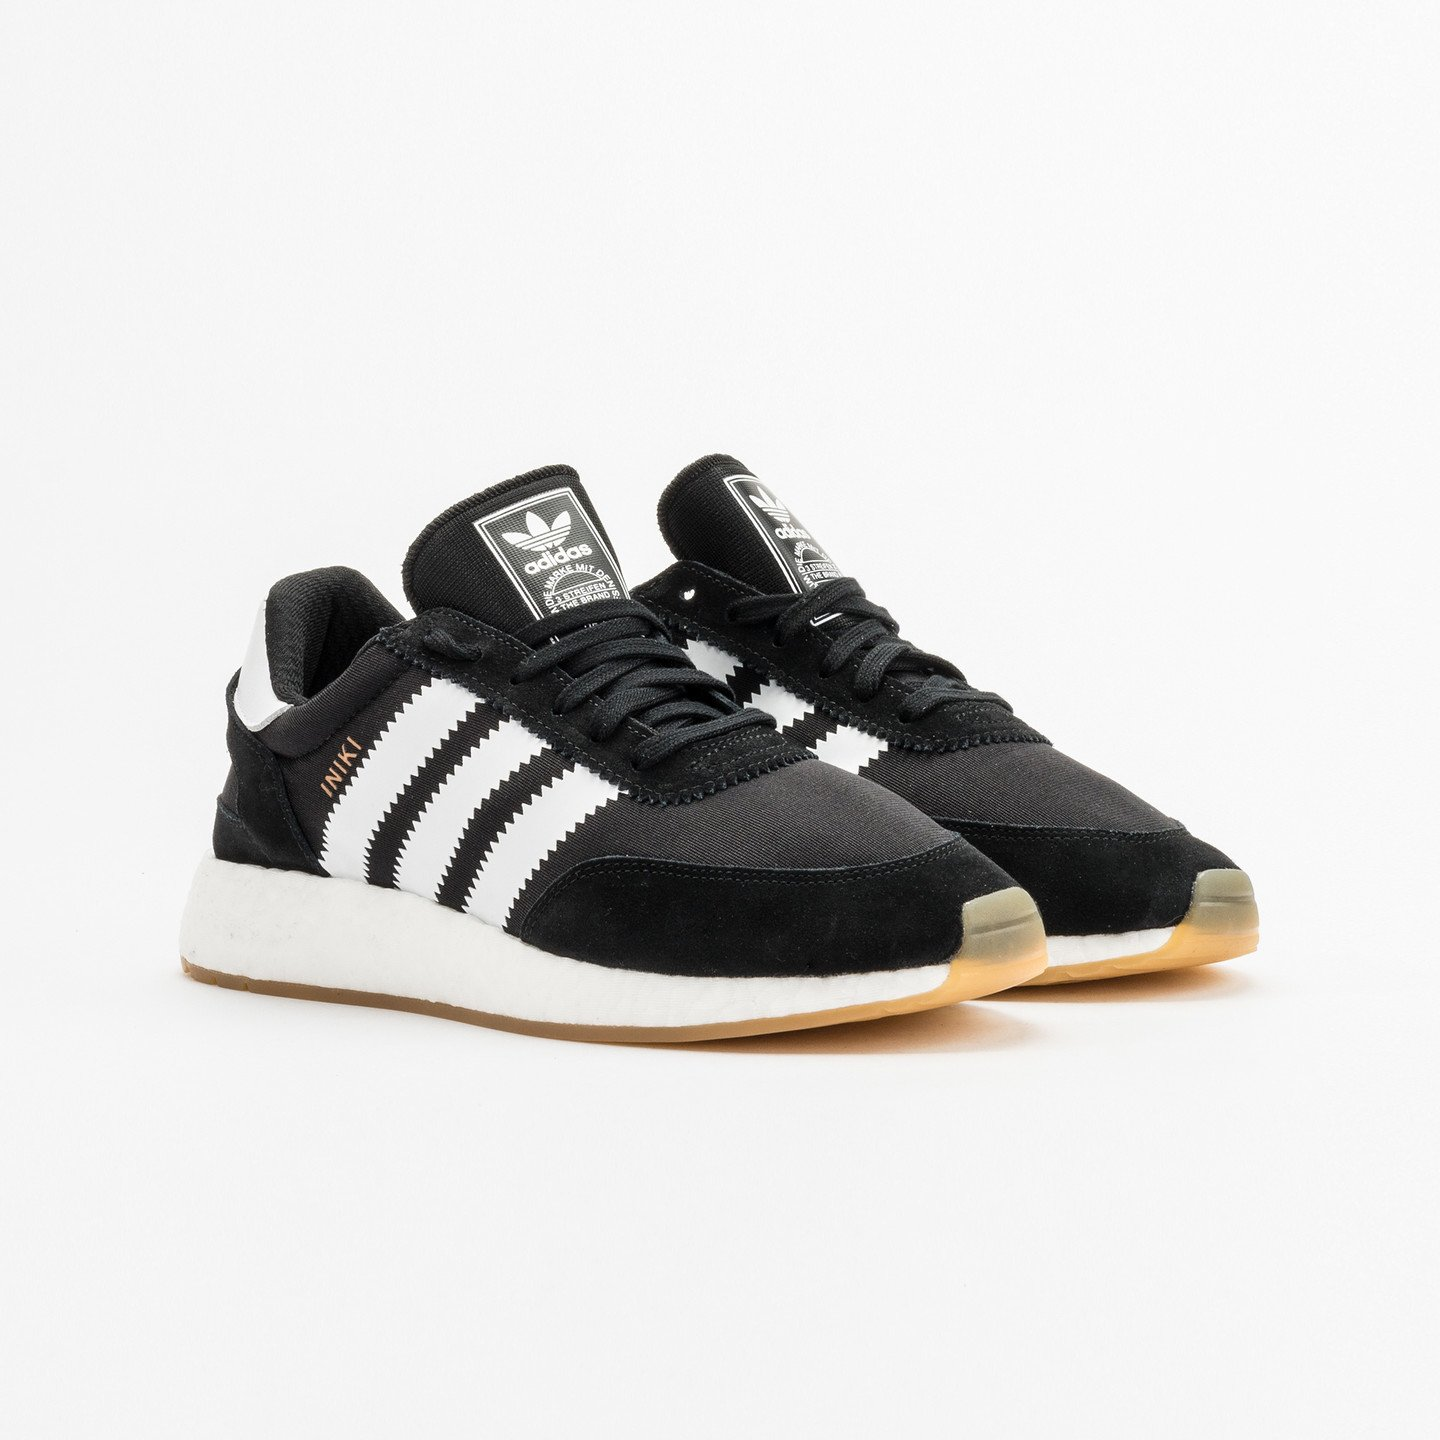 Adidas Iniki Runner Core Black / Ftwr White BY9727